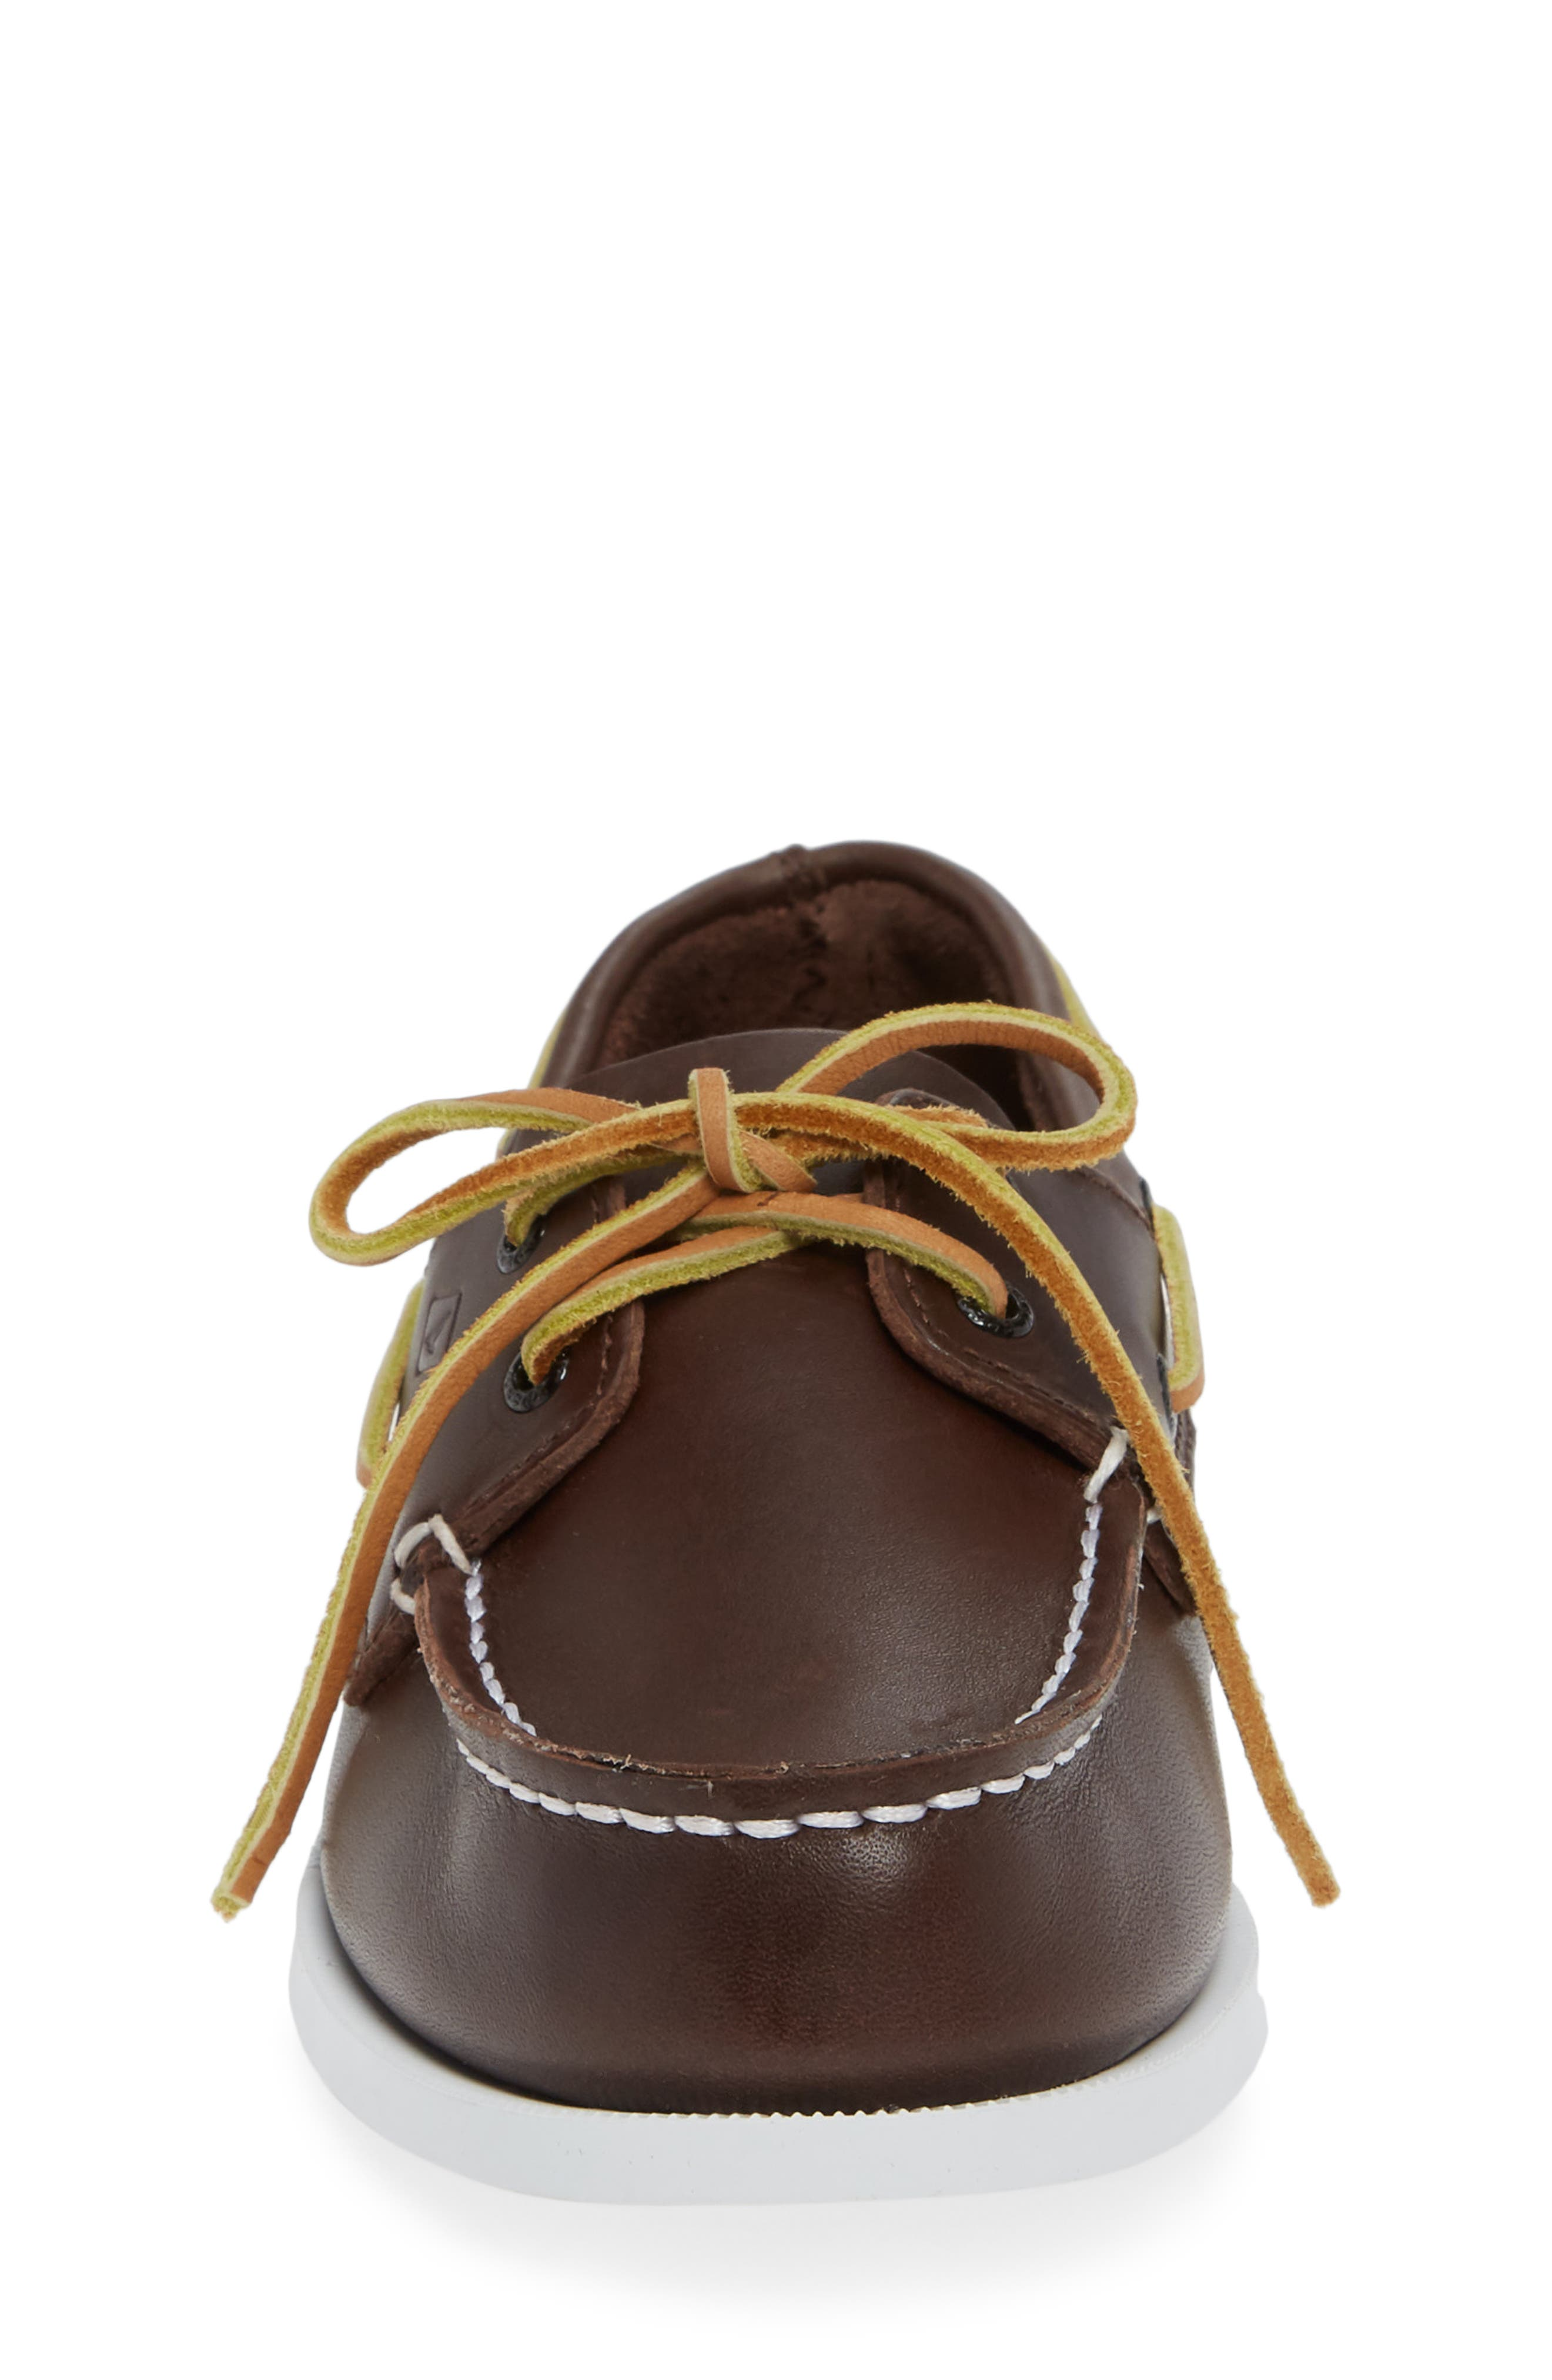 SPERRY KIDS,                             'Authentic Original' Boat Shoe,                             Alternate thumbnail 5, color,                             BROWN LEATHER